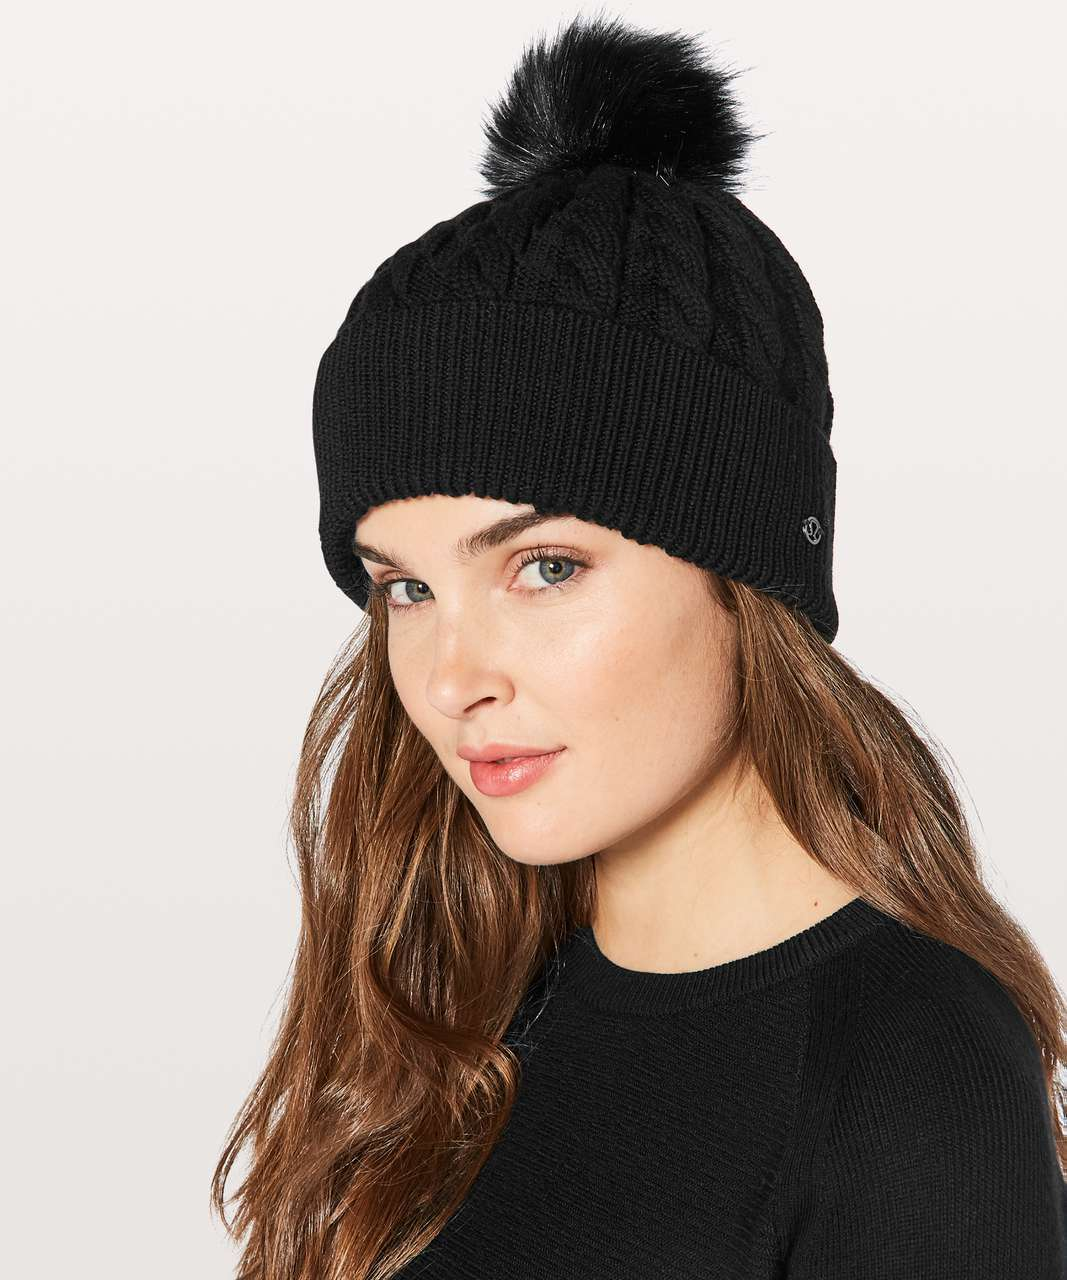 Lululemon Wool Be Toasty Toque - Black